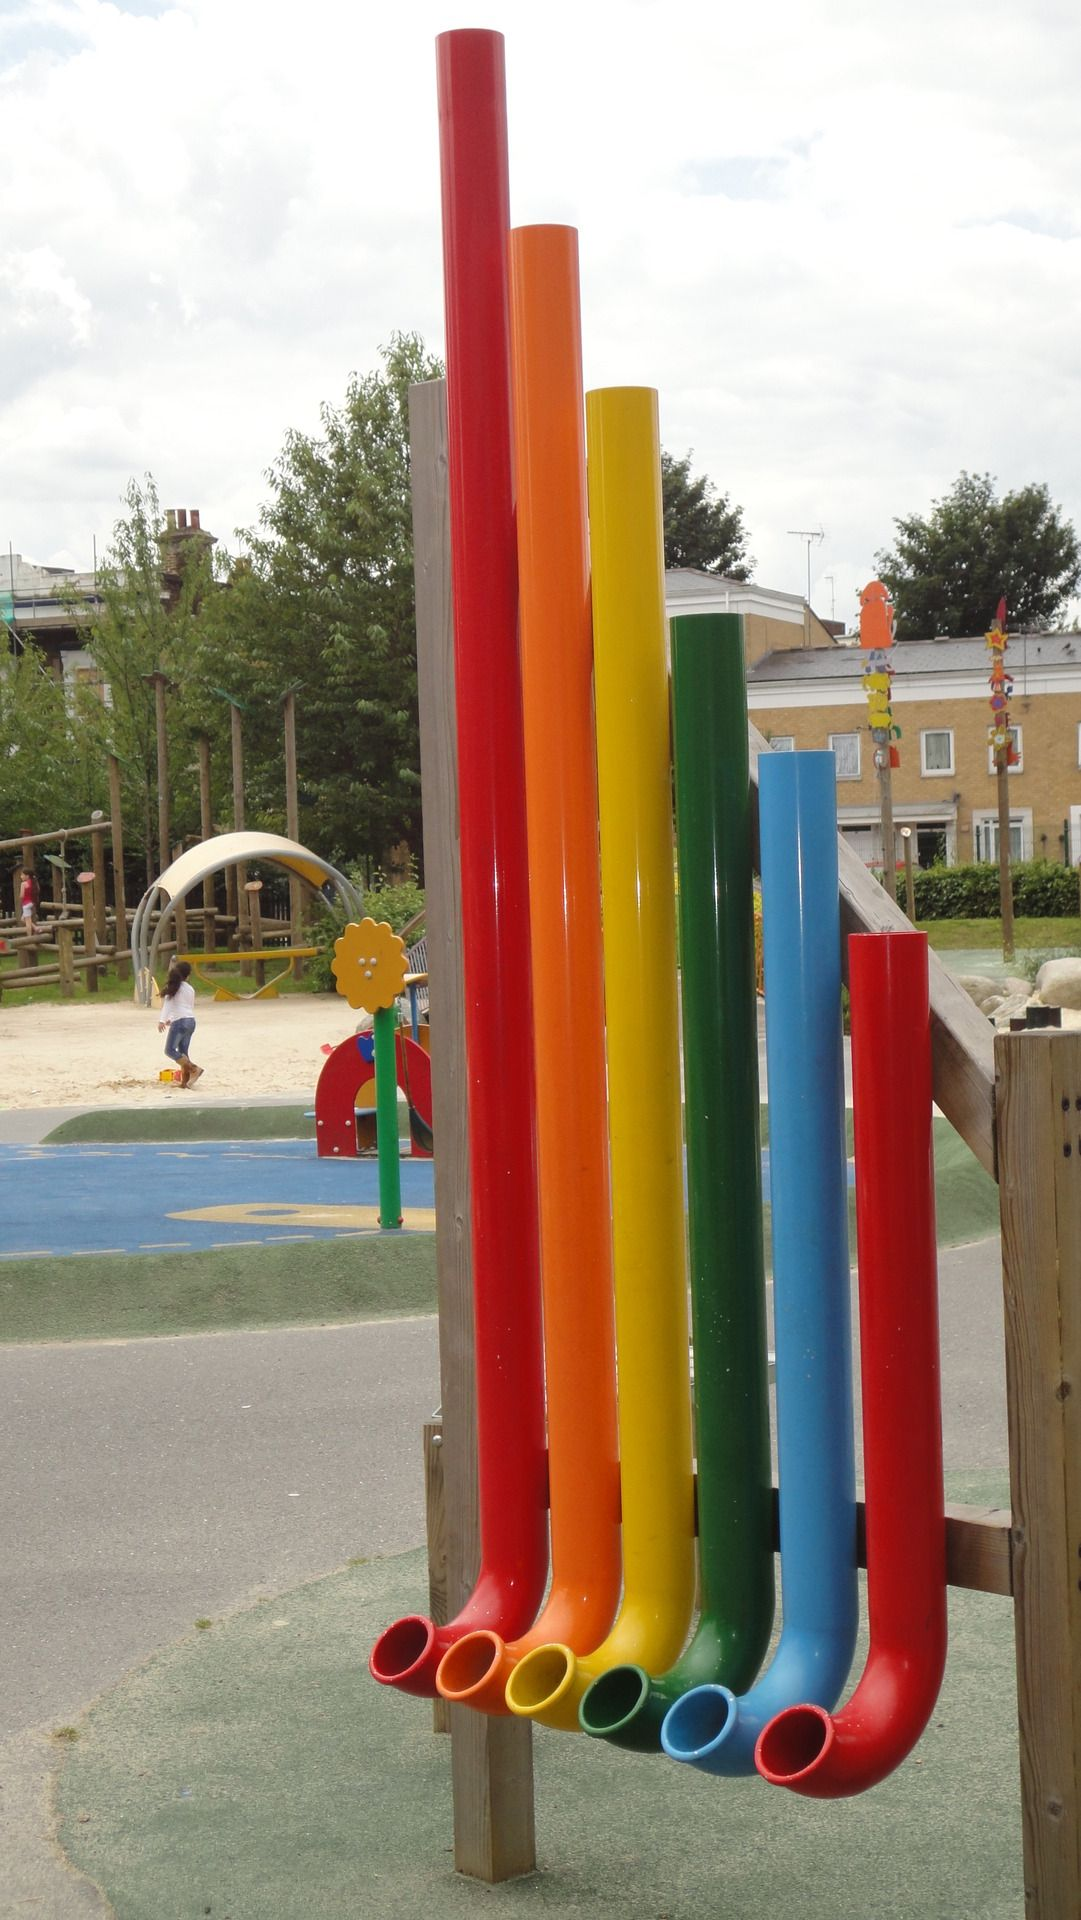 diy turn pvc pipes into a playground musical instrument i wish